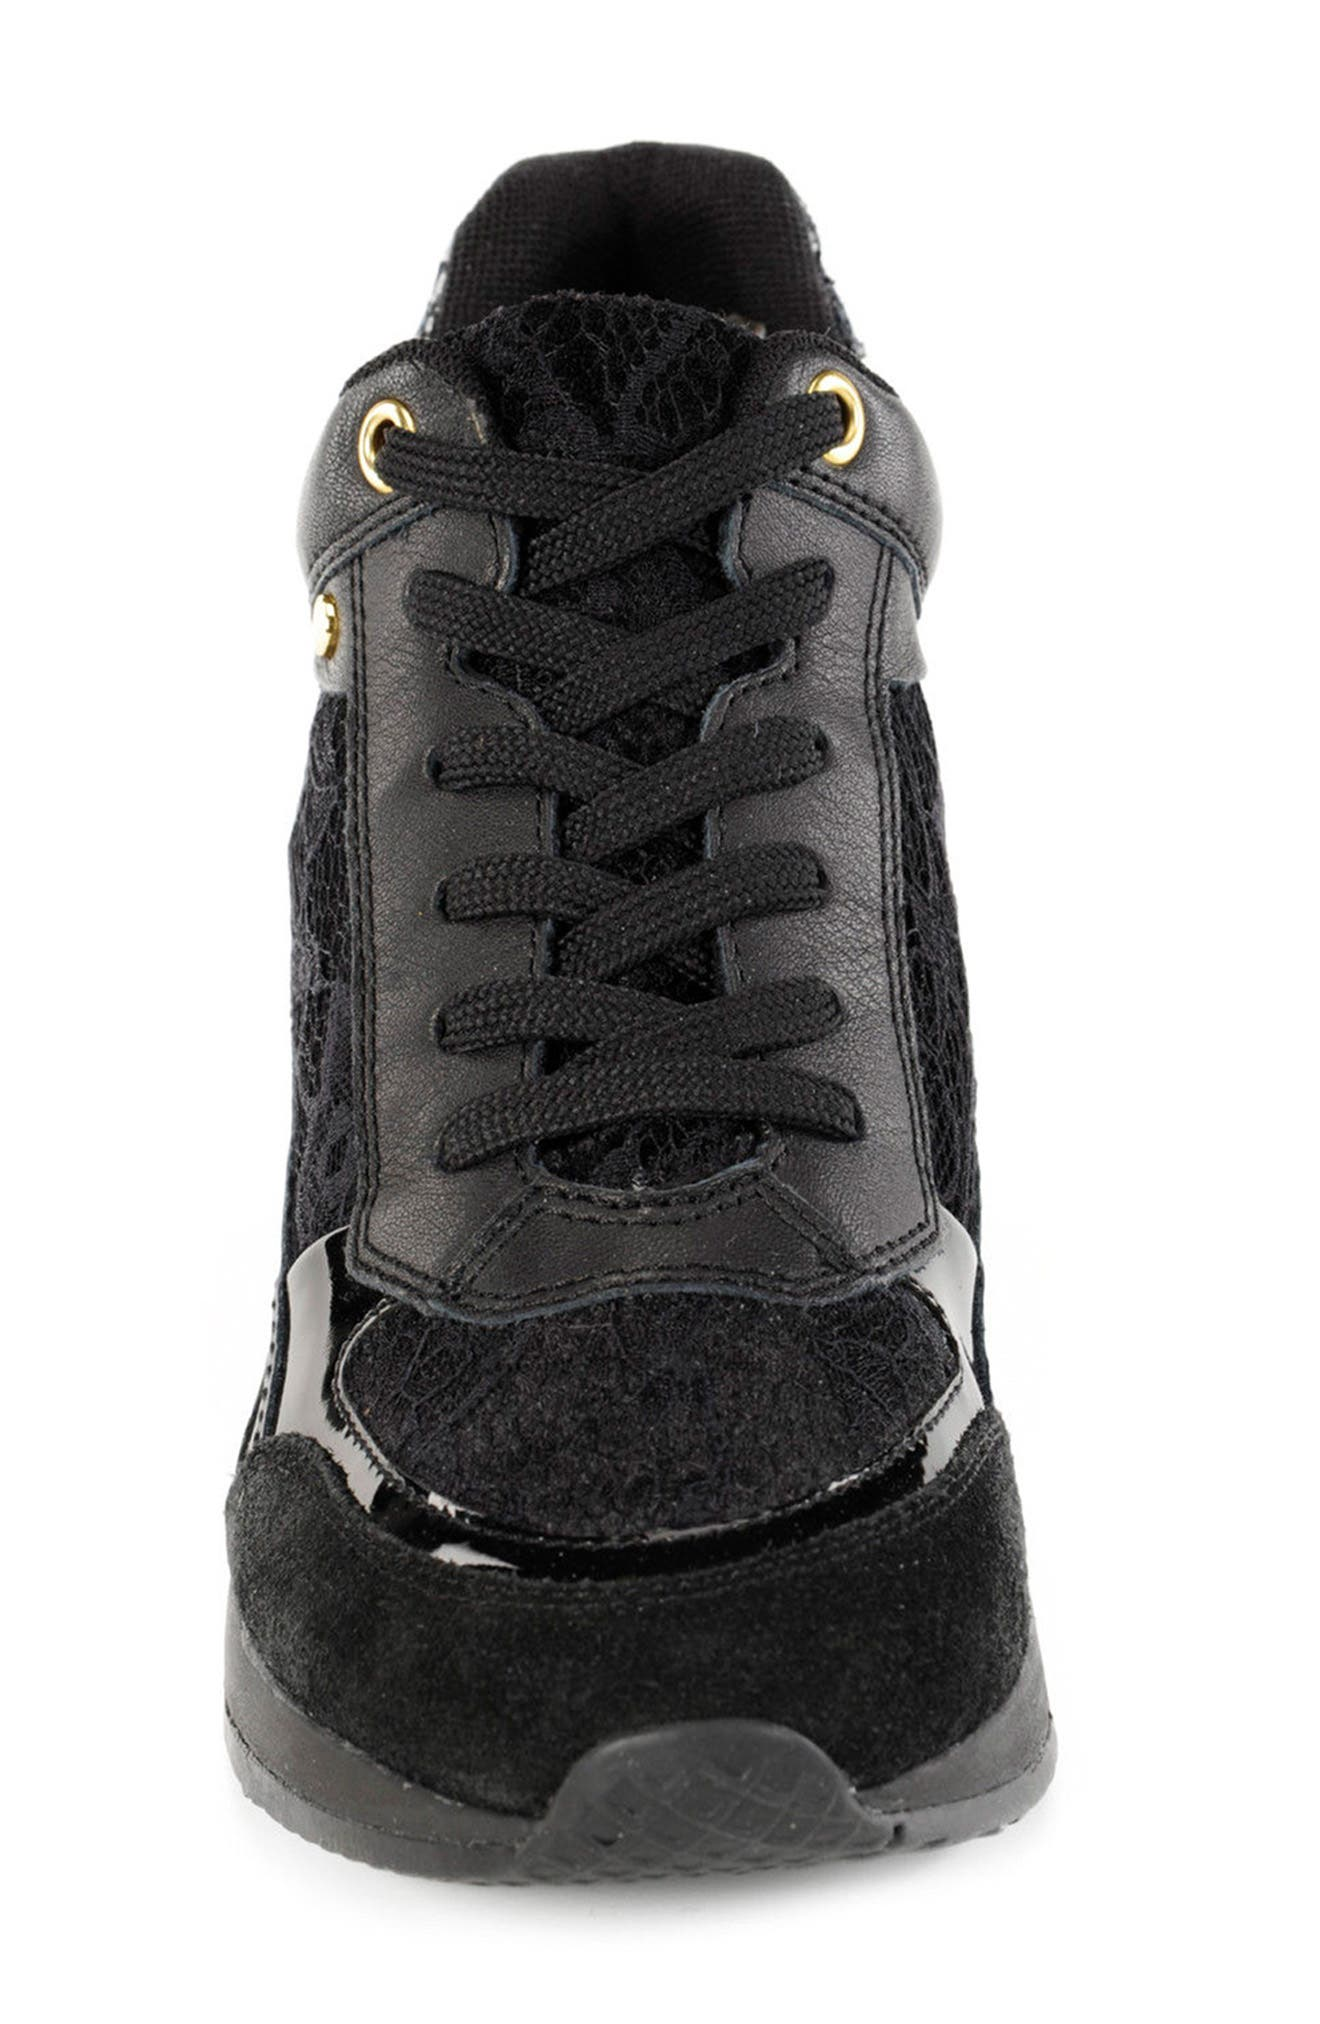 Nydame Wedge Sneaker,                             Alternate thumbnail 4, color,                             001